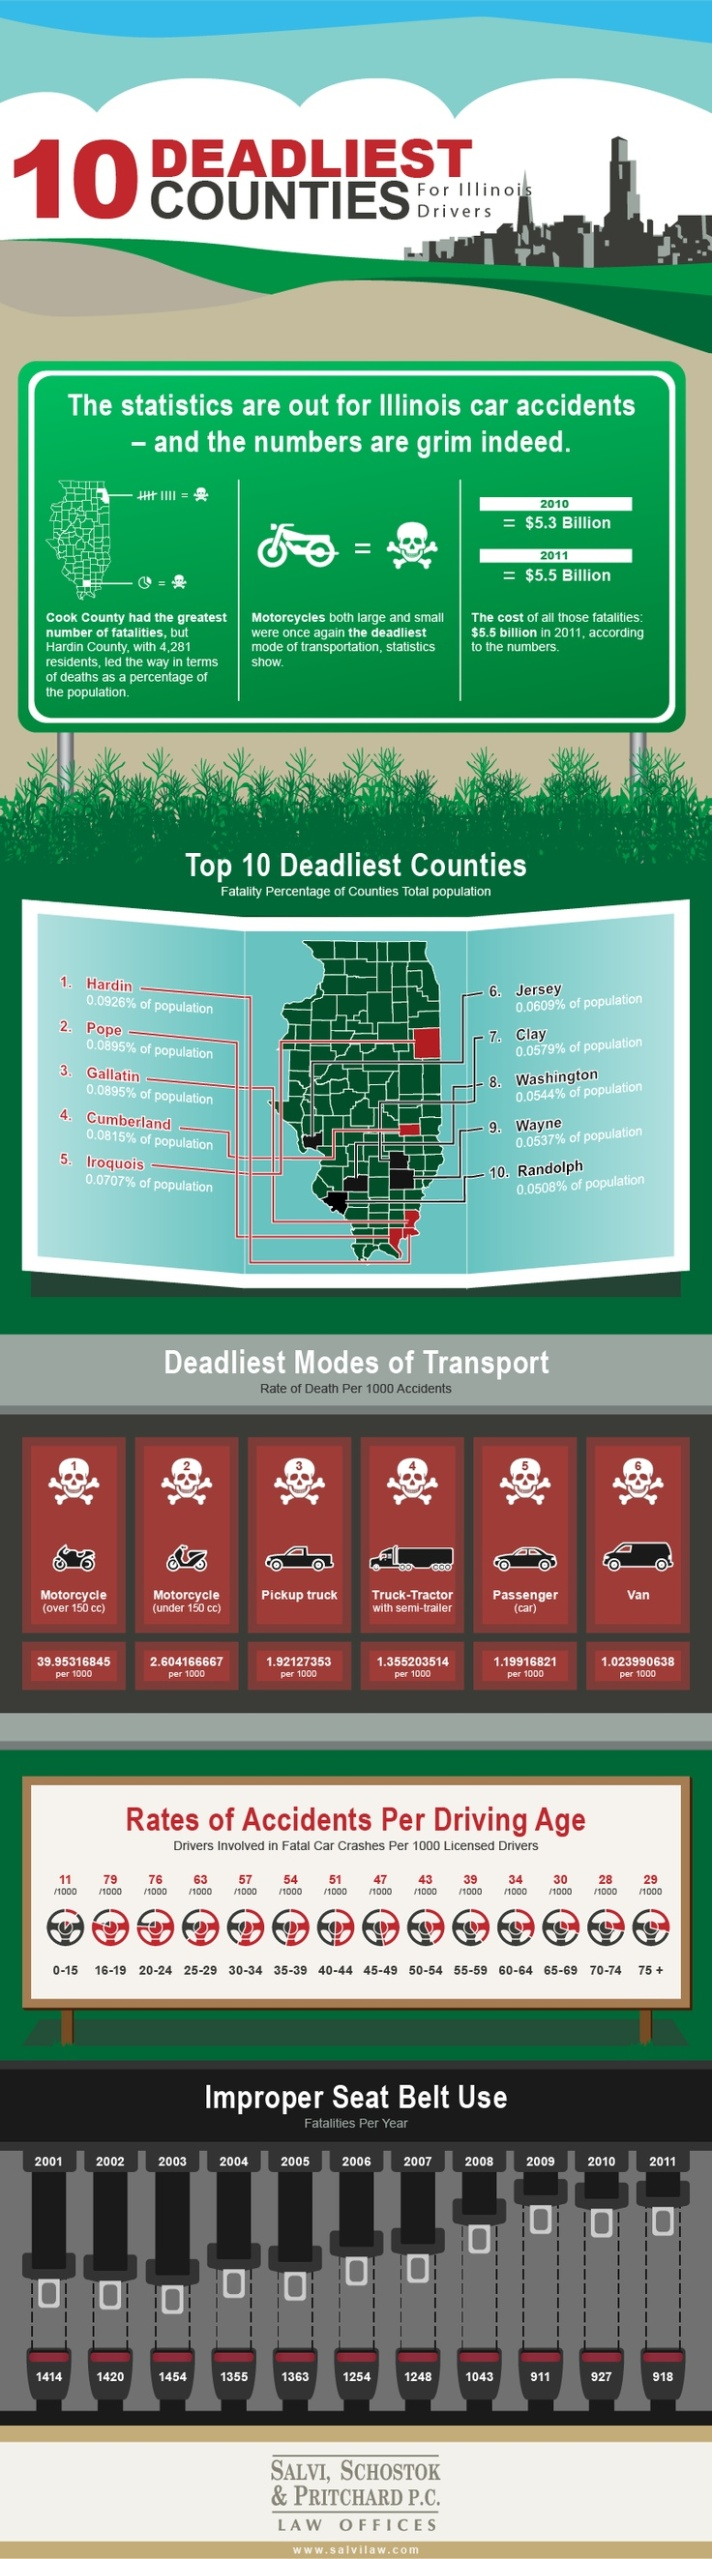 10 Deadliest Counties in Illinois